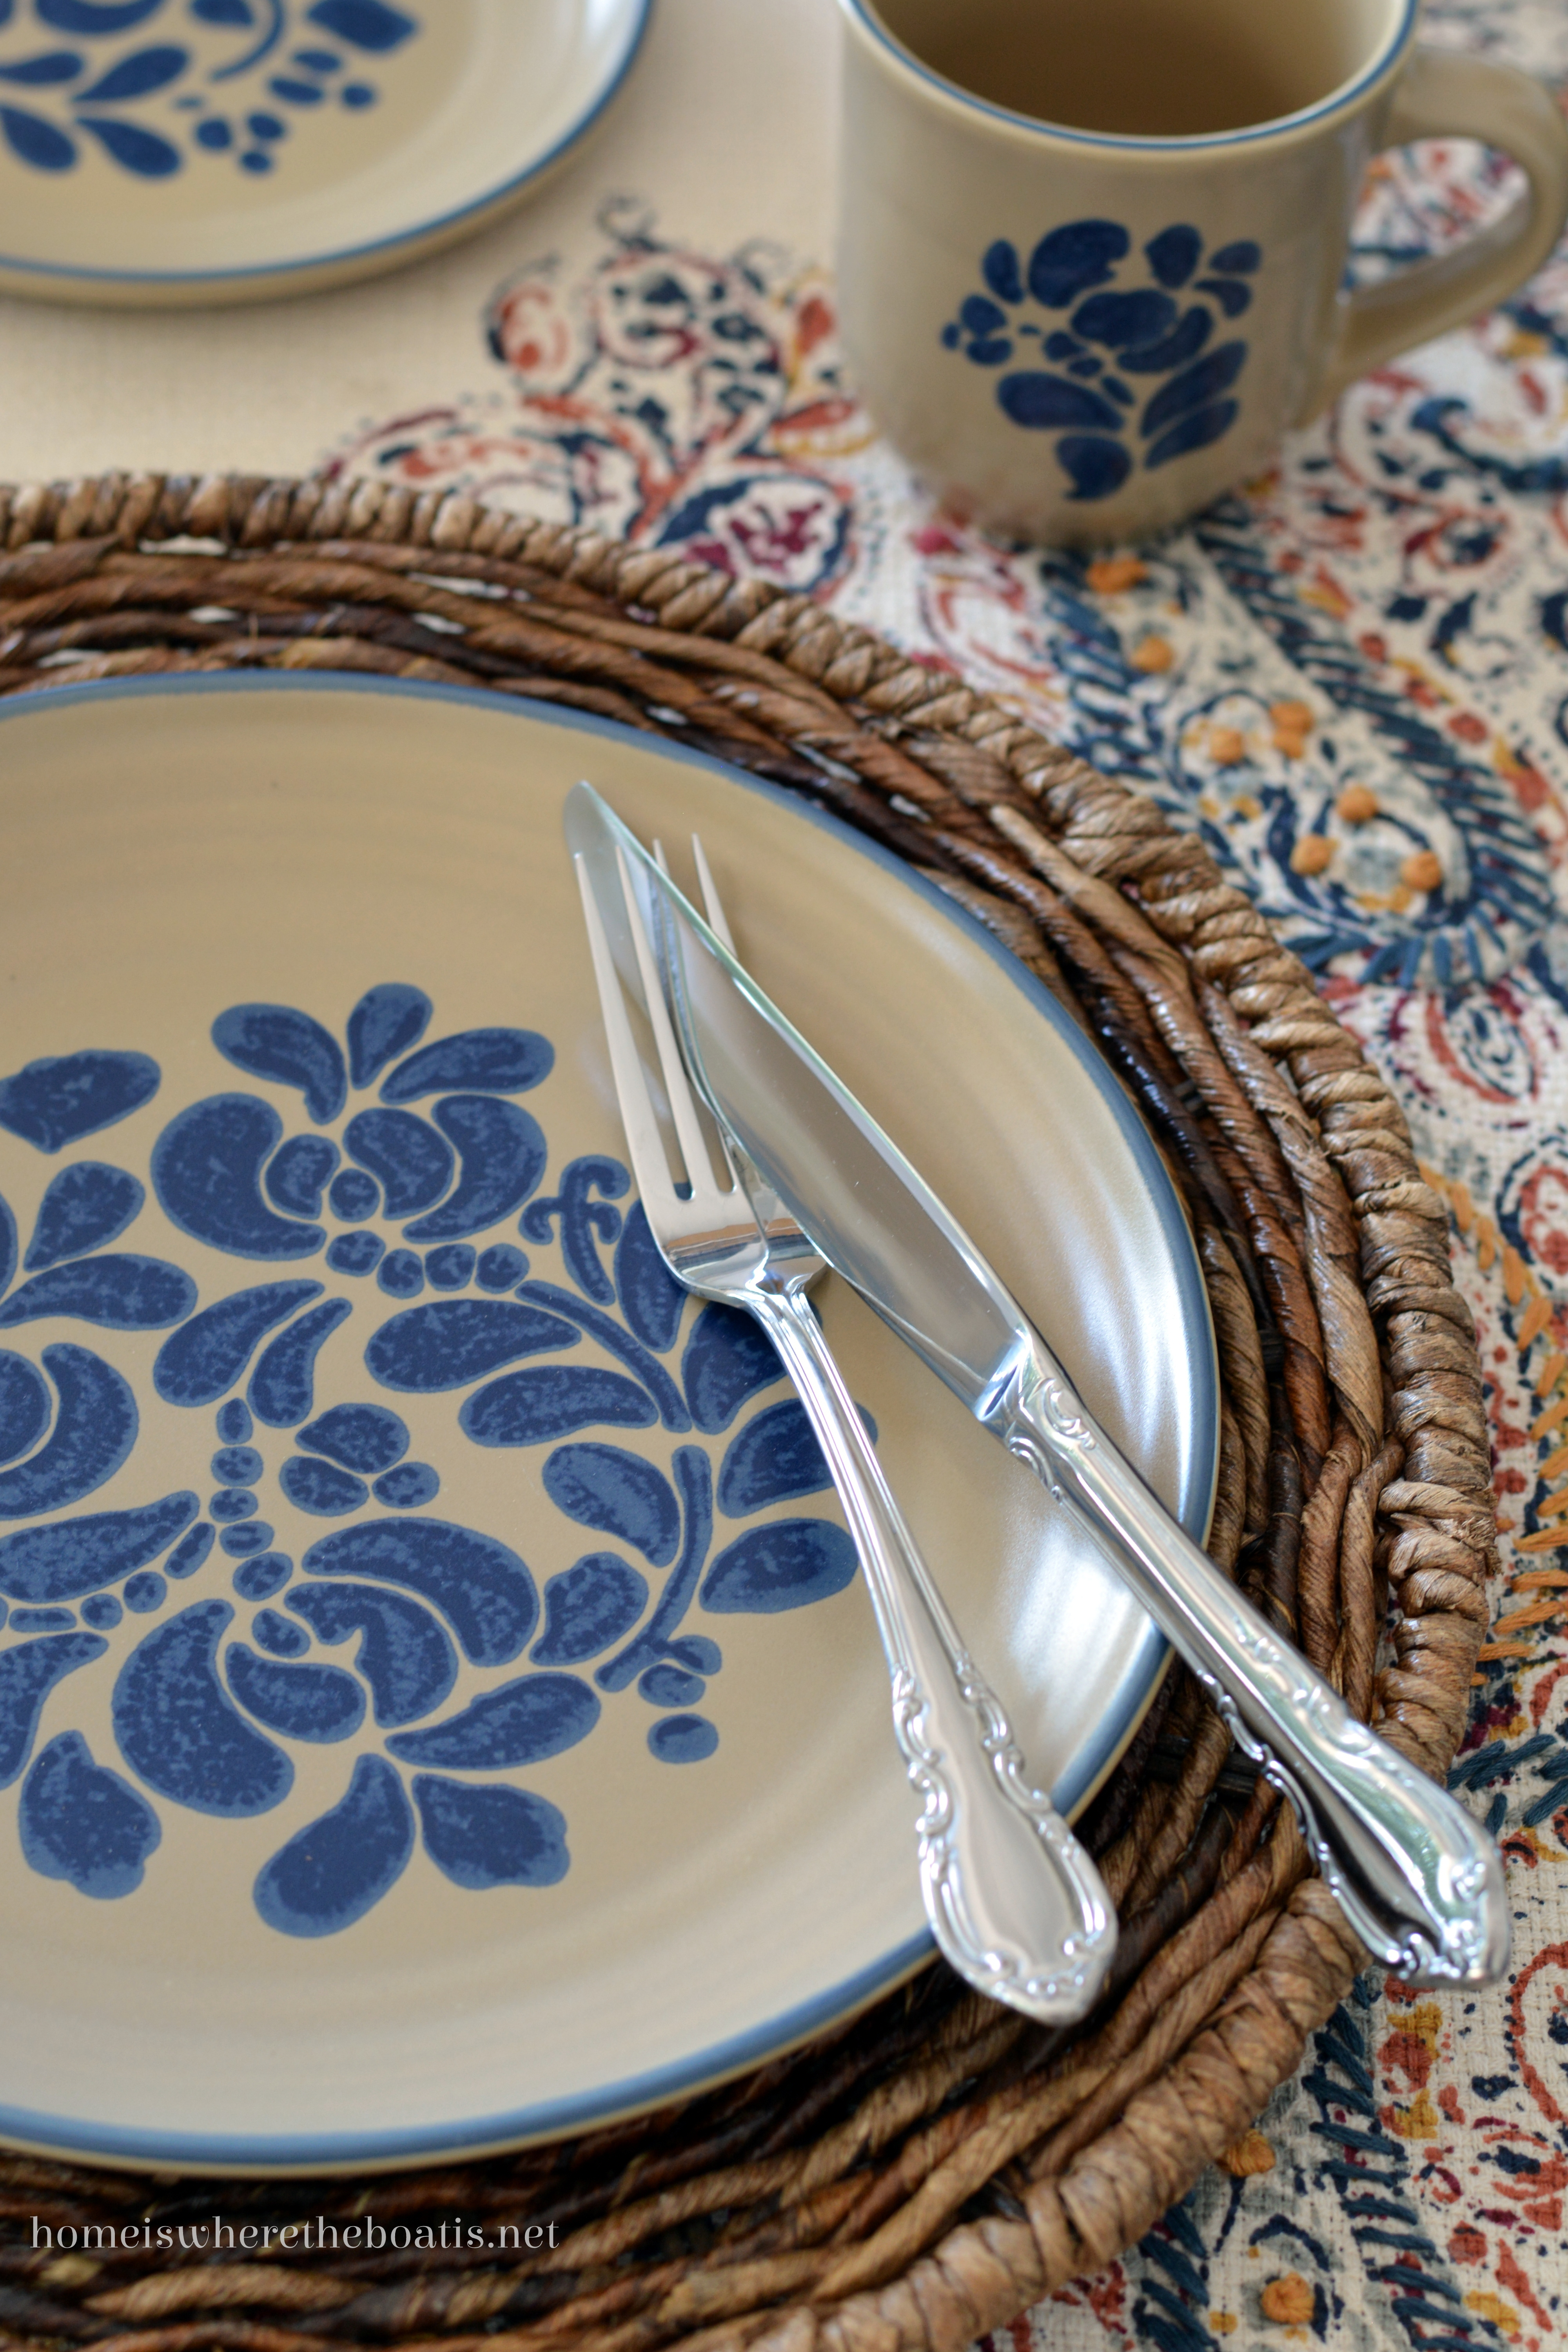 Layered with an embroidered runner with a paisley pattern with shades of gold cranberry and blue and complementary swirl patterns to pair with the floral ... & At the Table: A Fall Transition with Pfaltzgraff Folk Art u2013 Home is ...